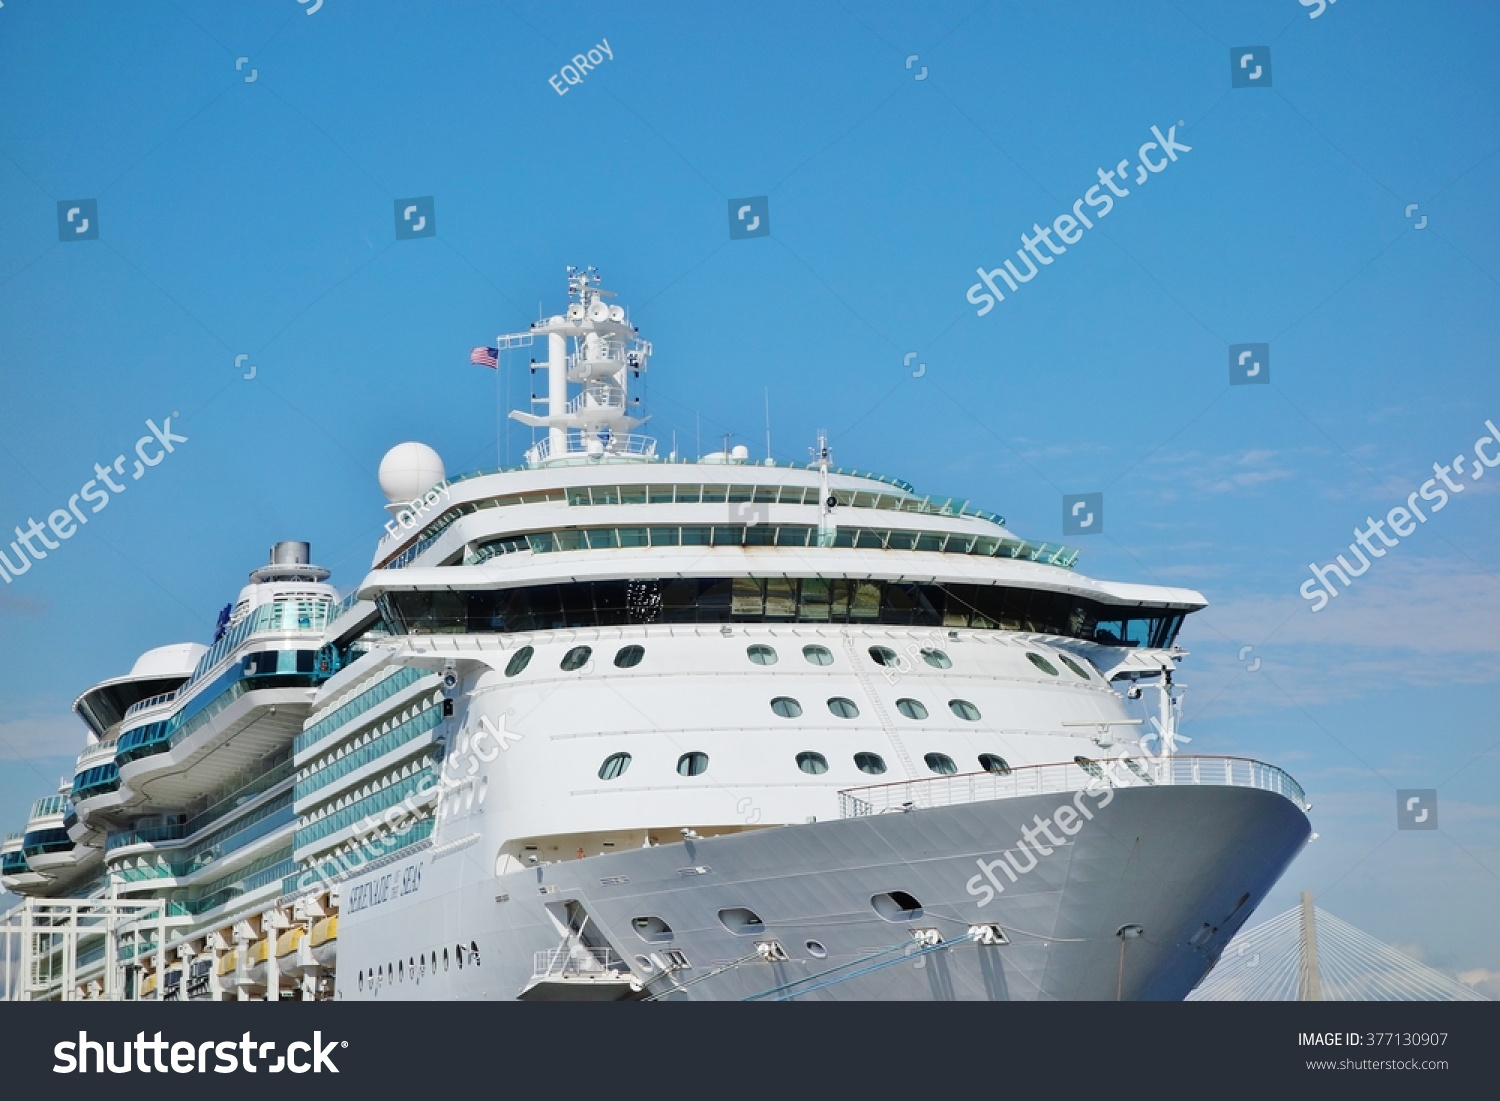 Charleston Sc October Cruise Stock Photo - Cruise ships out of charleston south carolina